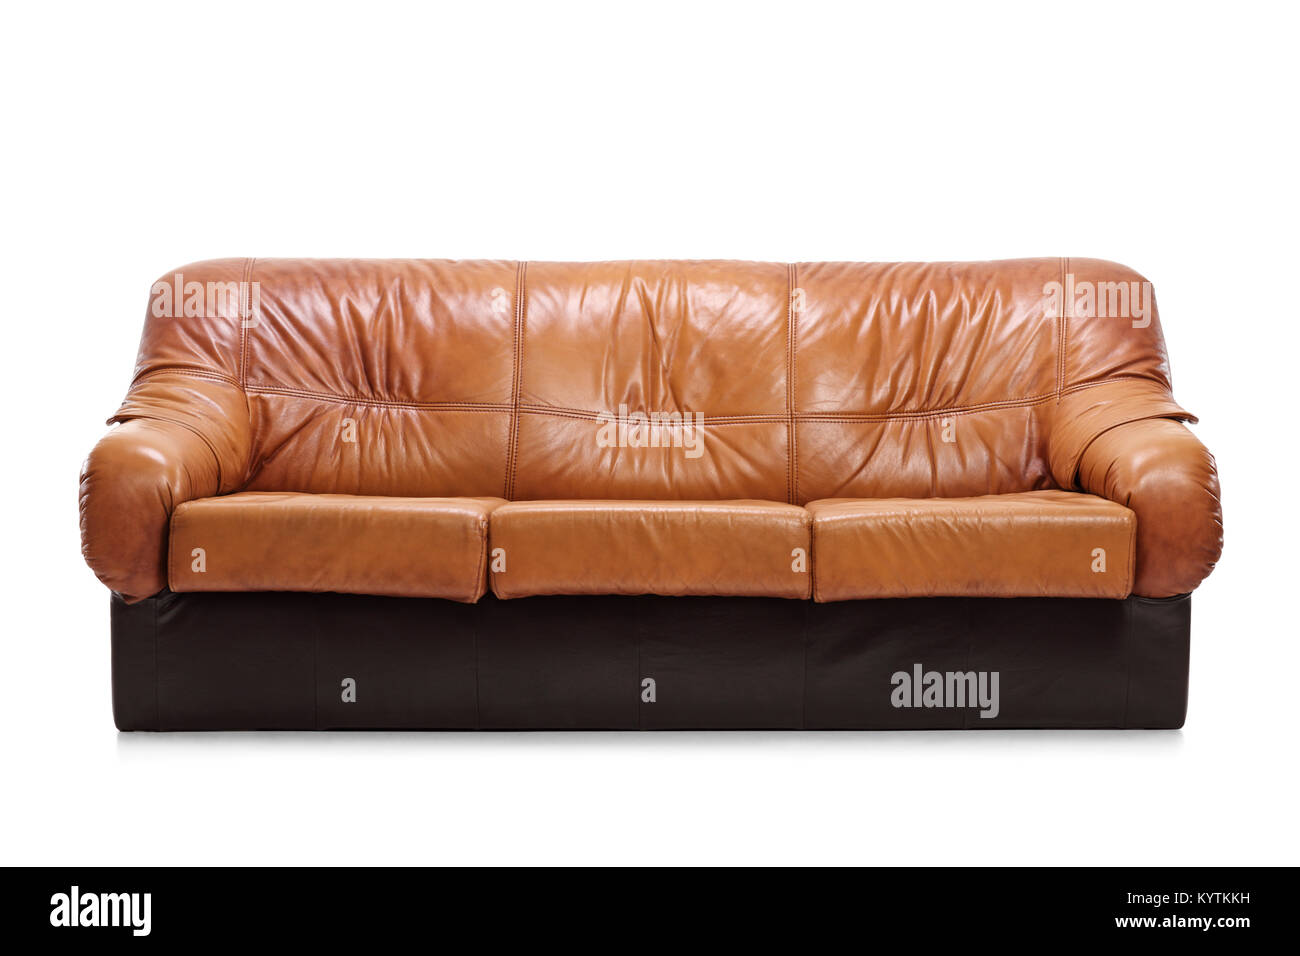 Leather sofa isolated on white background - Stock Image